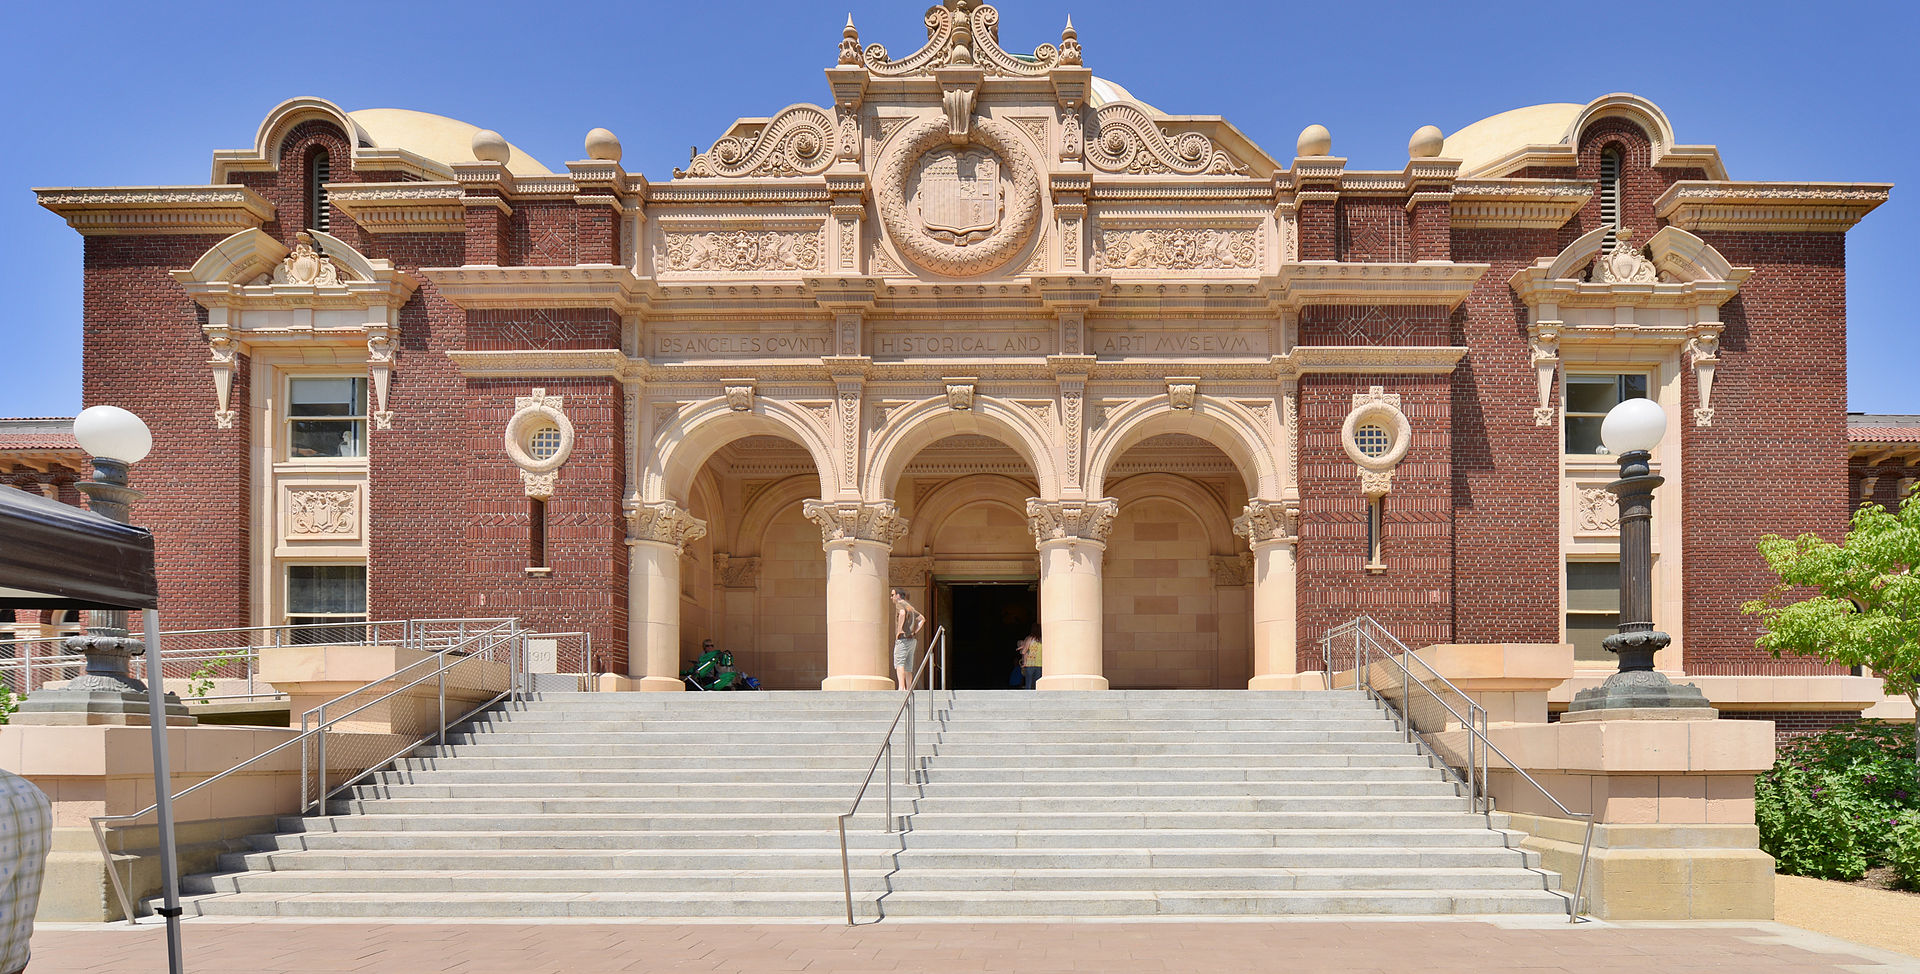 The Natural History Museum of Los Angeles County was founded in 1913 and is one of the largest museums in the country, holding an enormous collection of specimens and cultural artifacts.